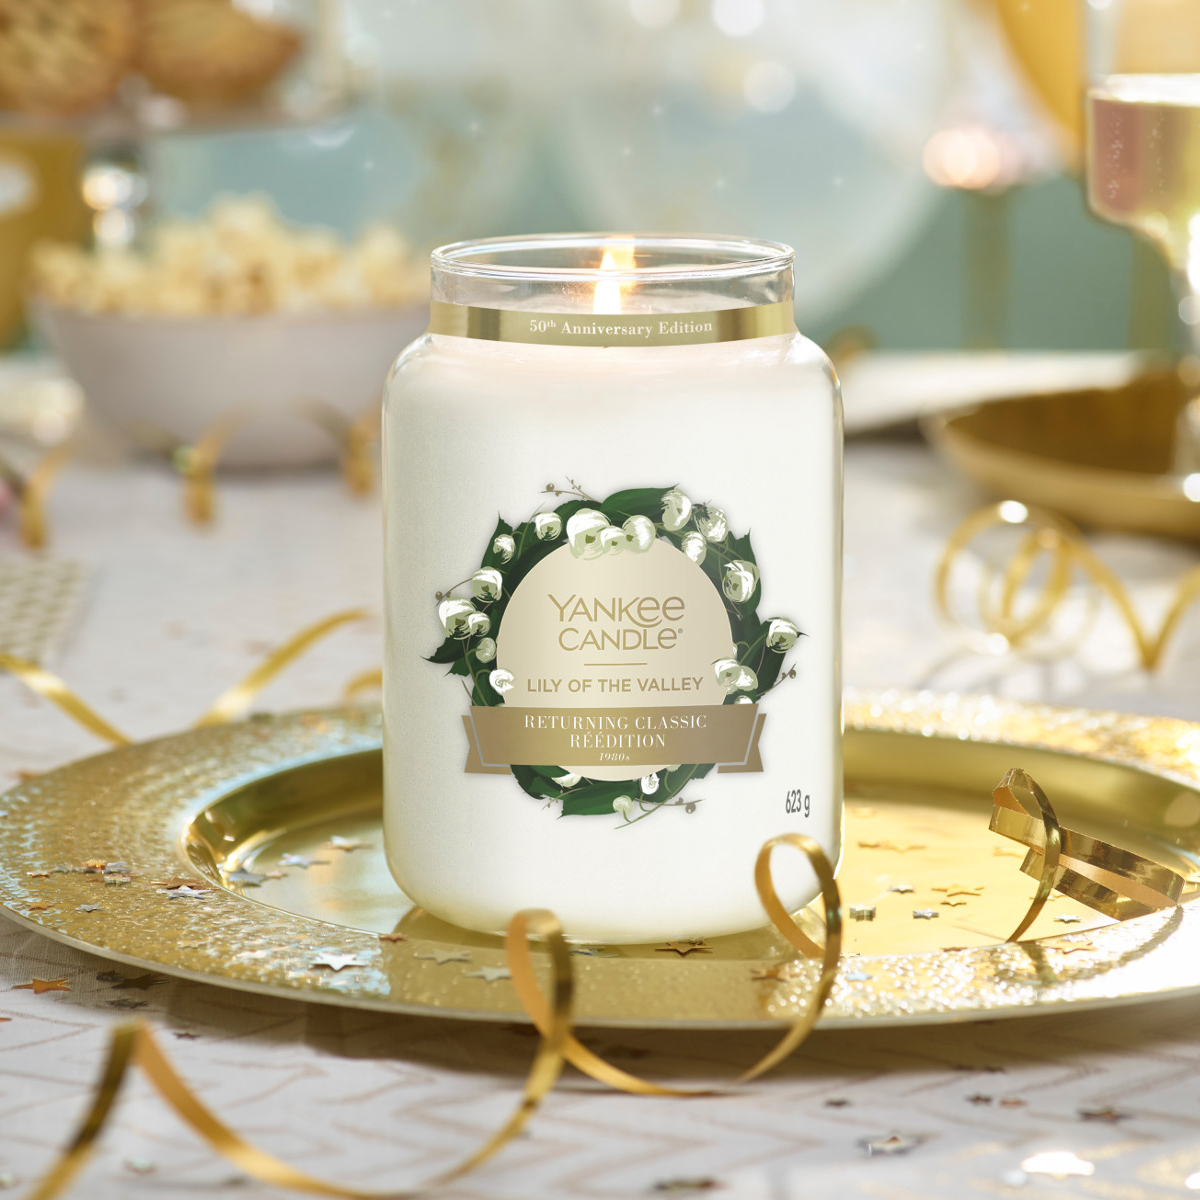 50 anniversaire yankee candle bougie muguet lilly of the valley